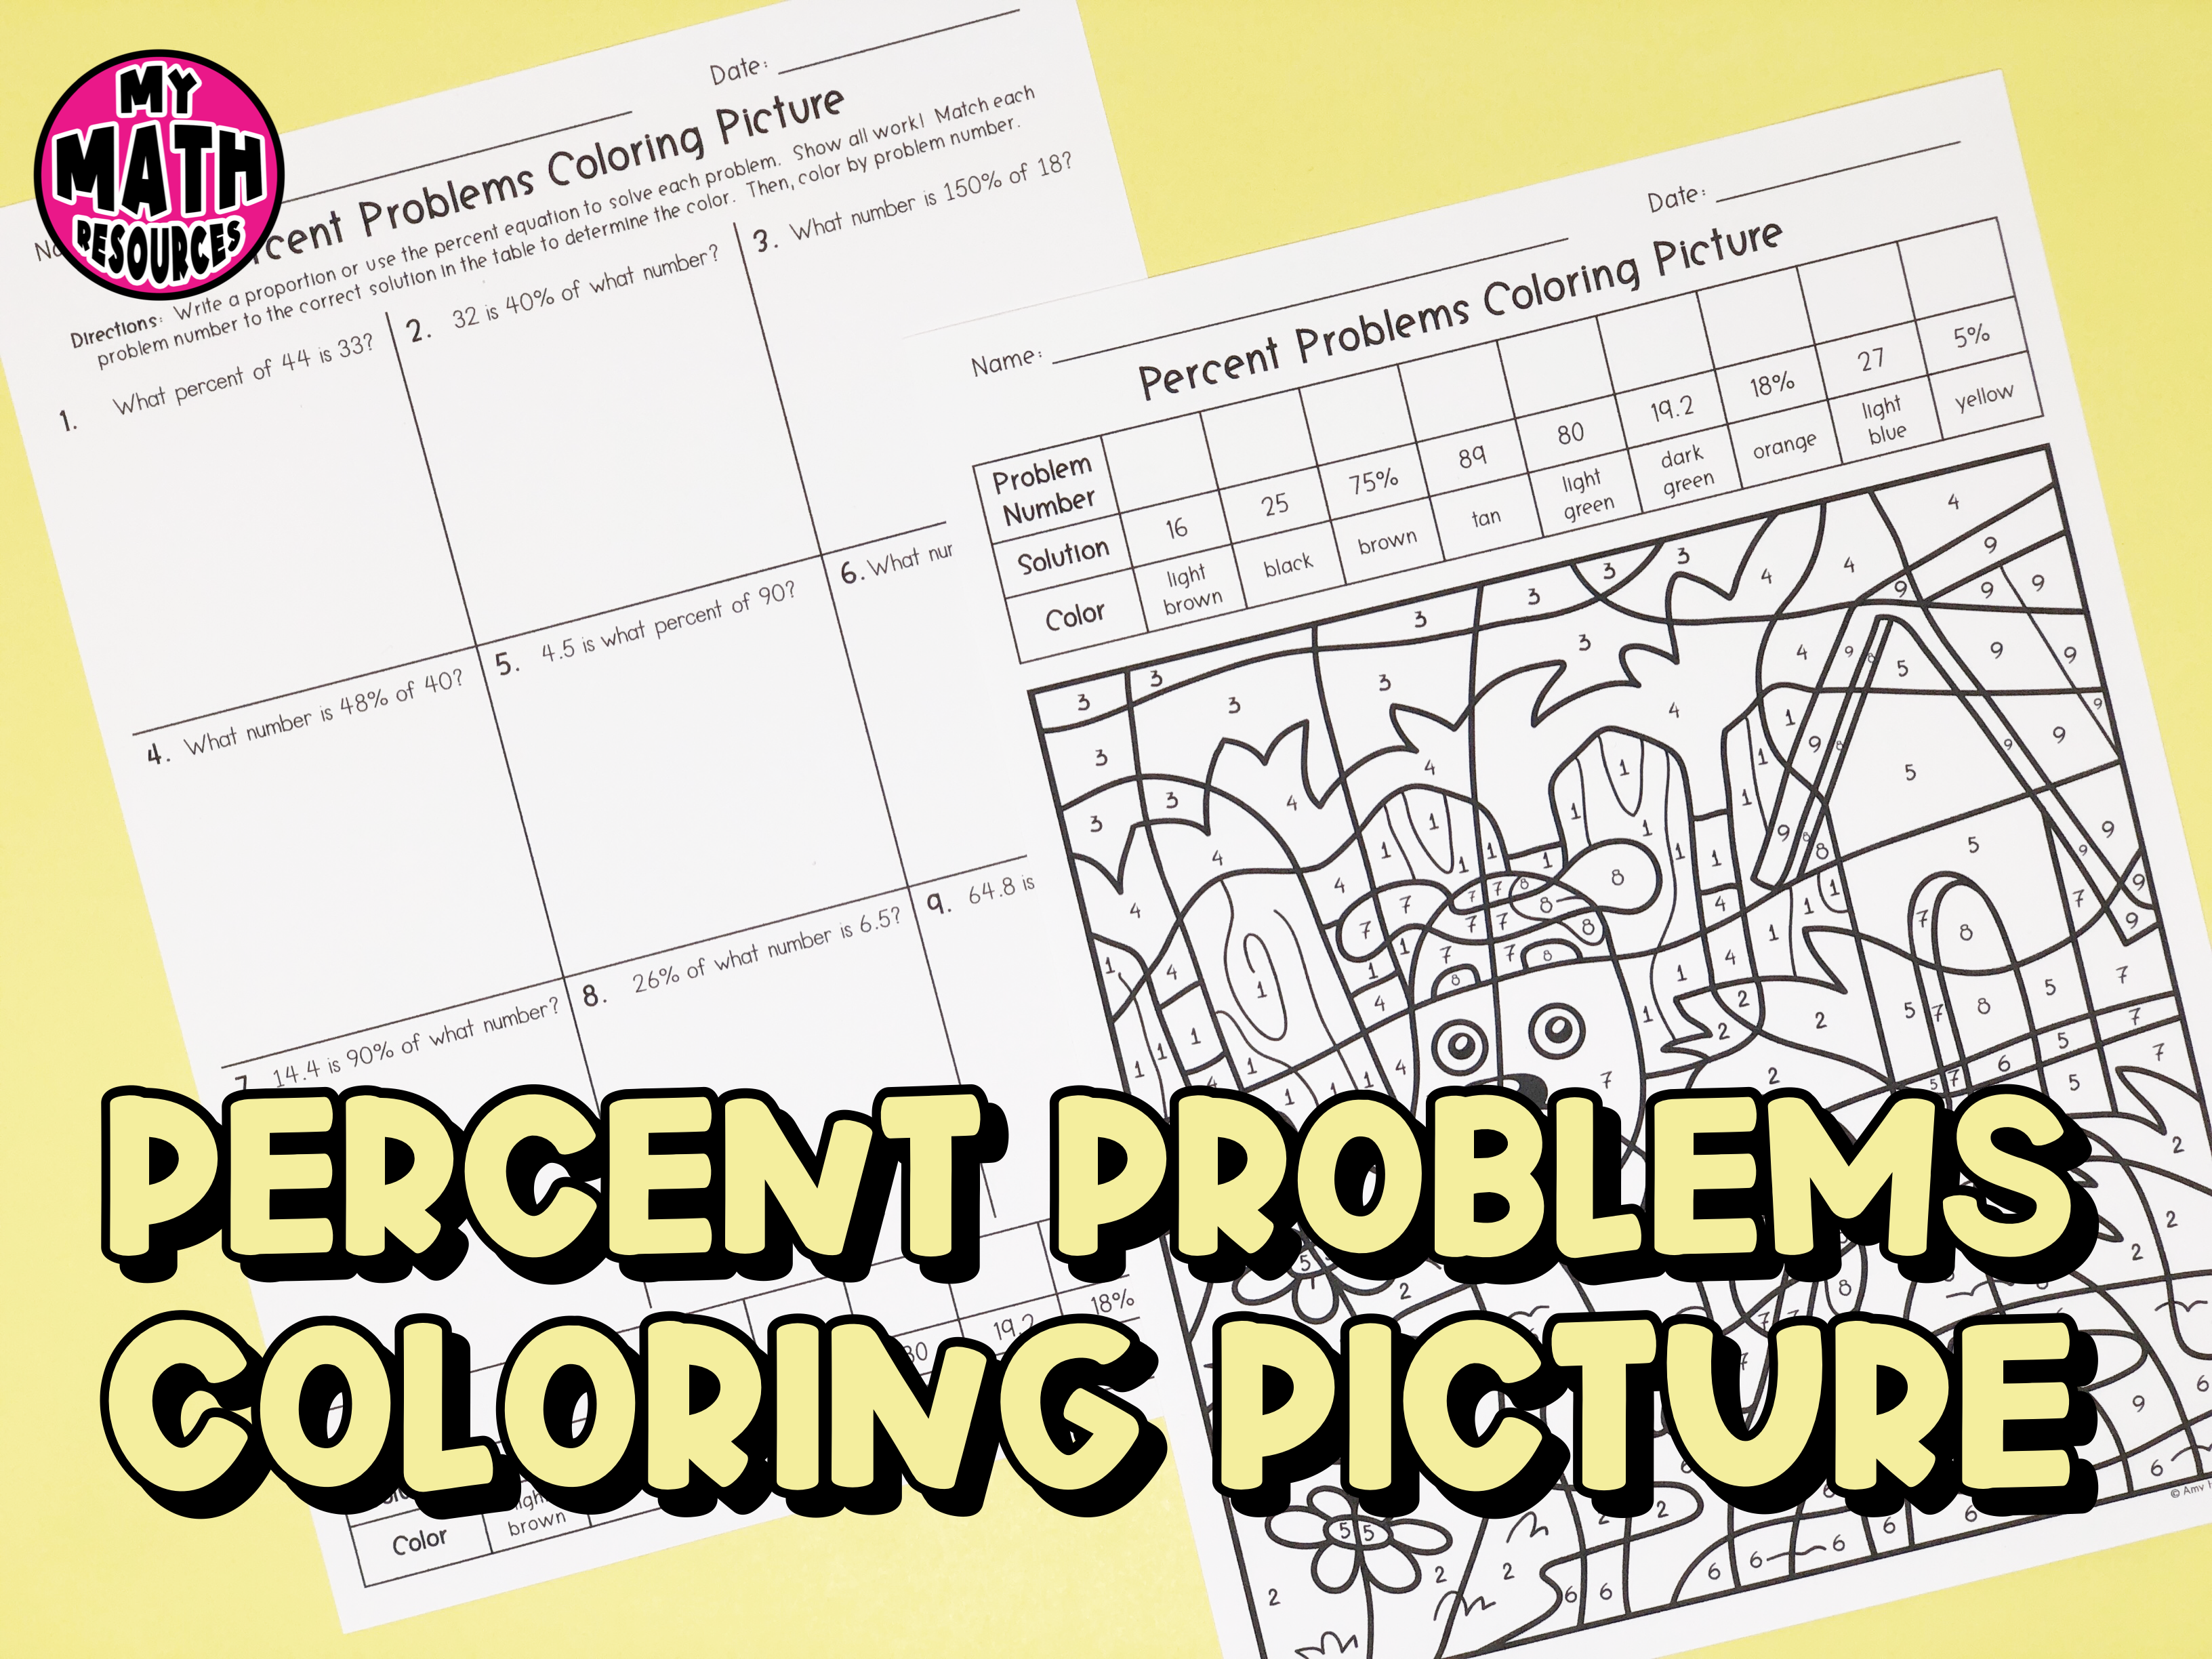 small resolution of My Math Resources - Percent Problems Coloring Picture Worksheet   Math